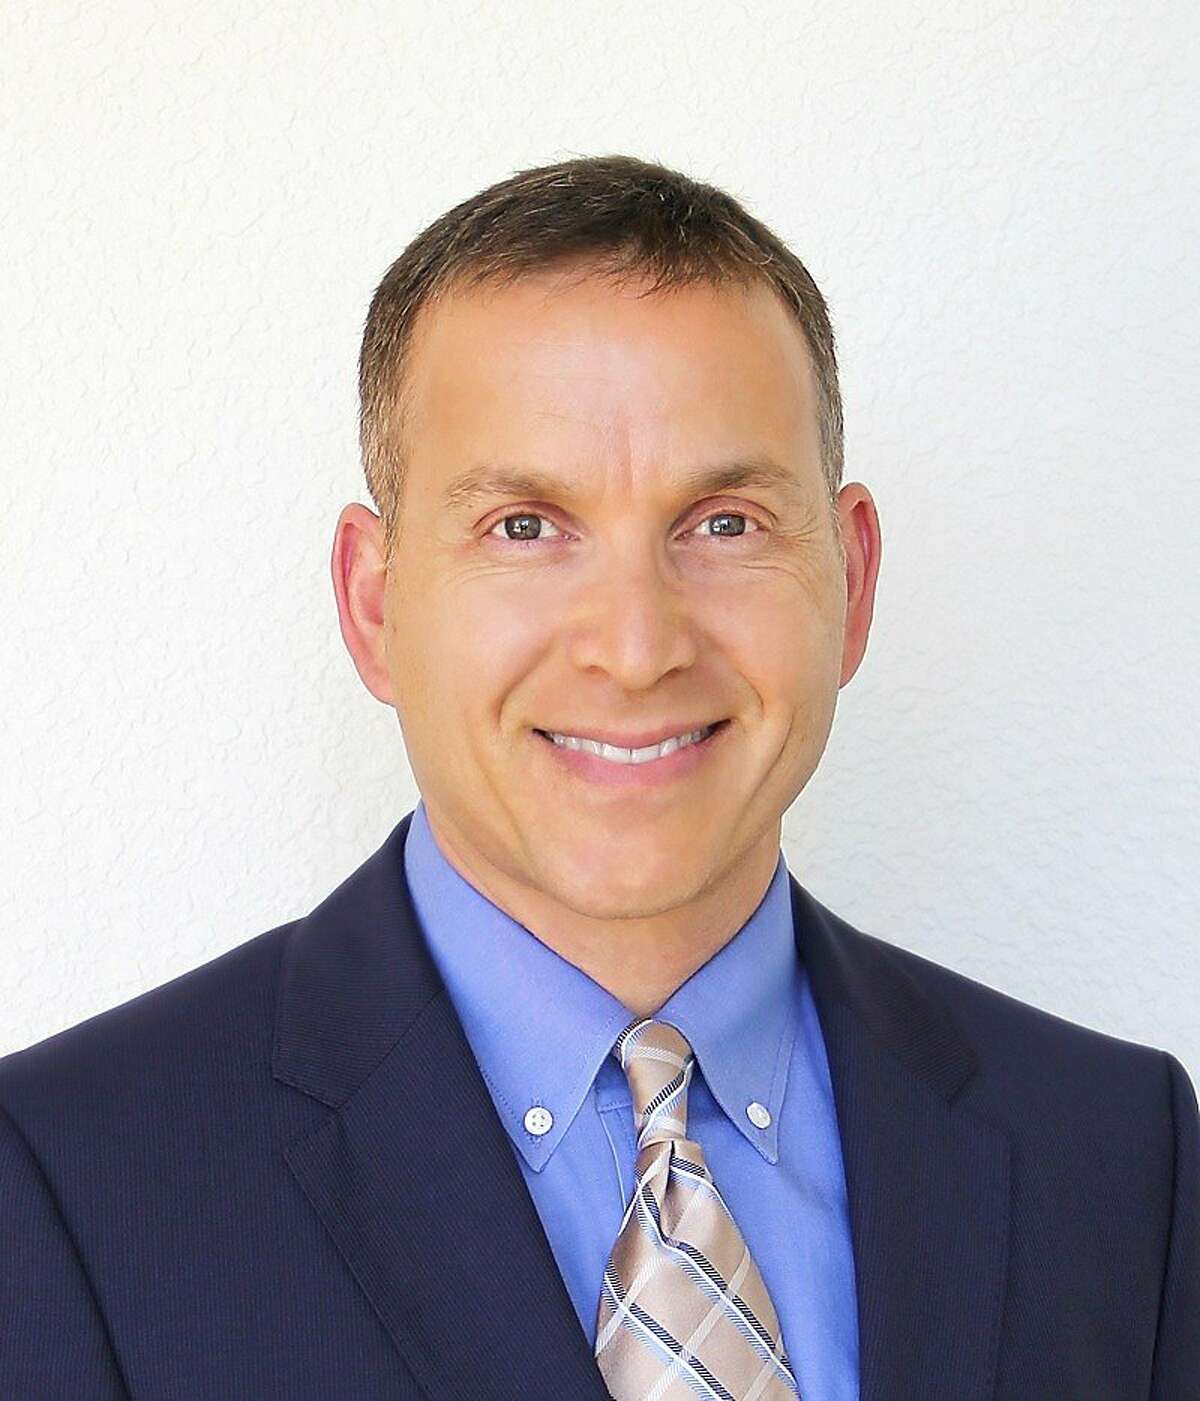 Stanford Children's Health and Lucile Packard Children's Hospital named Les Lifter vice president, chief marketing officer.